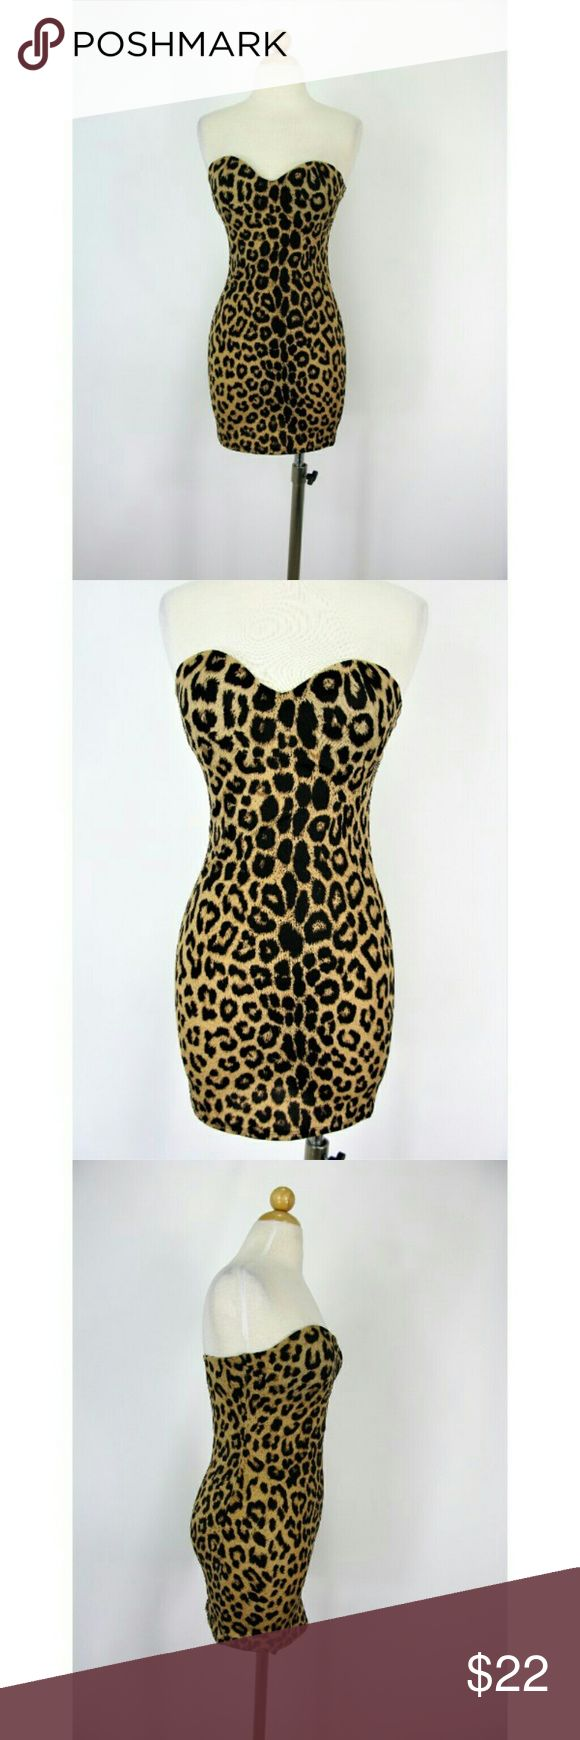 F.I.T Strapless Leopard Print Slip Shapewear Dress FIT Figure Improving Technology Strapless Shapewear Dress, Lightly Padded Cups, 3 Row Adjustable Back Strap, Key Hole Design -- Mint Like New -- Chest 14.5 -- Length 22 from underarm 85/15 Poly/Spandex F.I.T Dresses